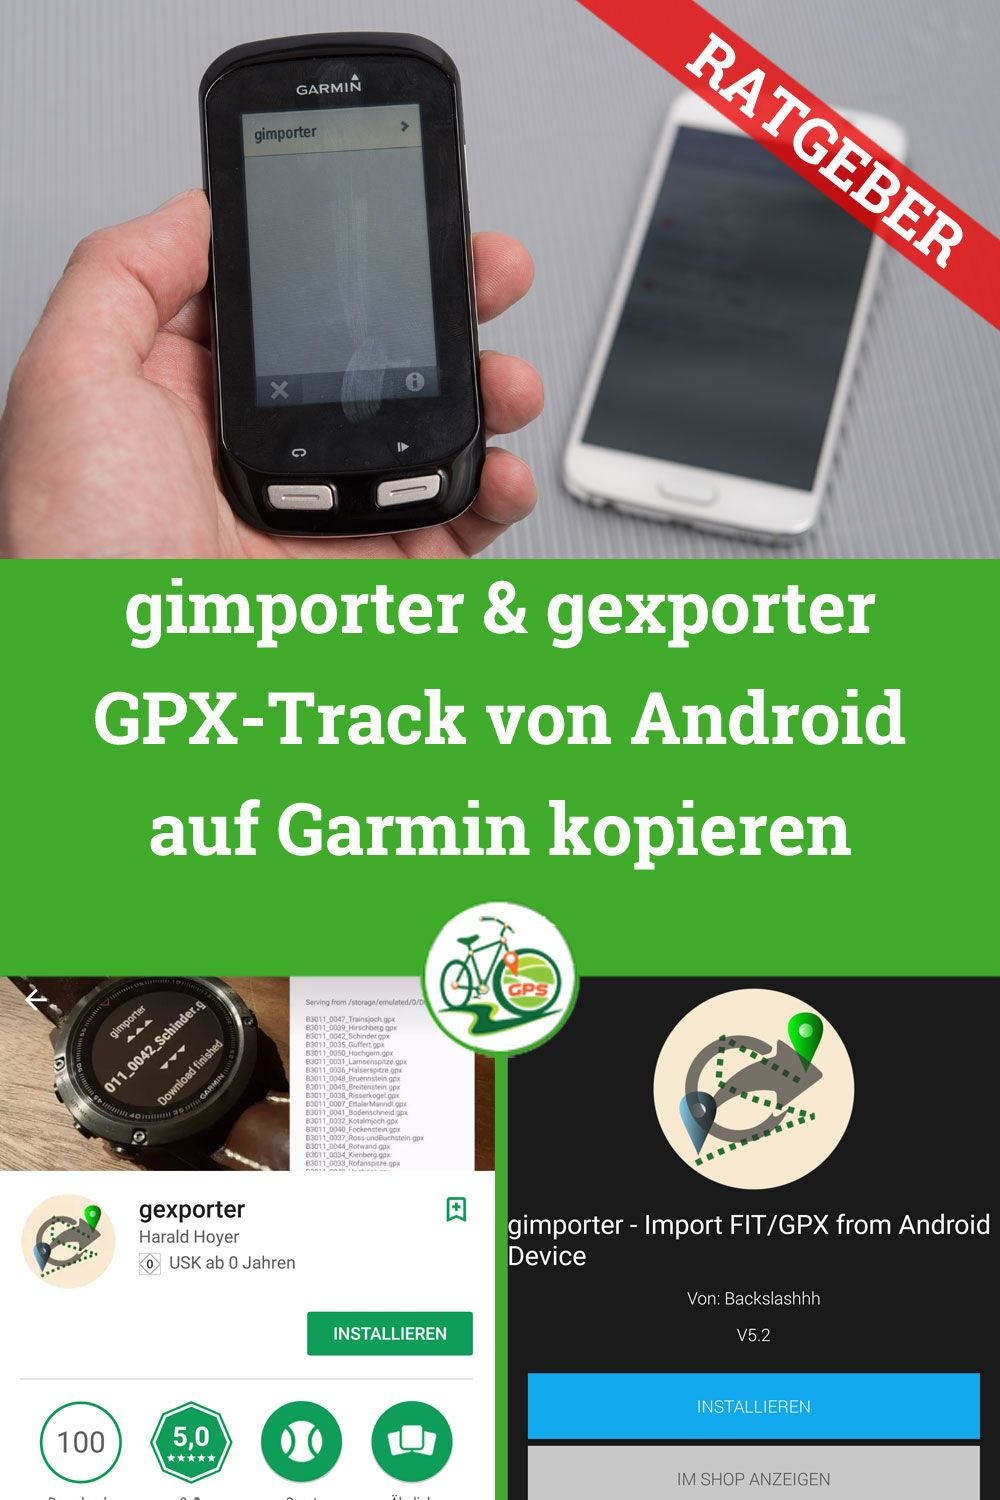 gimporter & gexporter Connect IQ App » Track Android